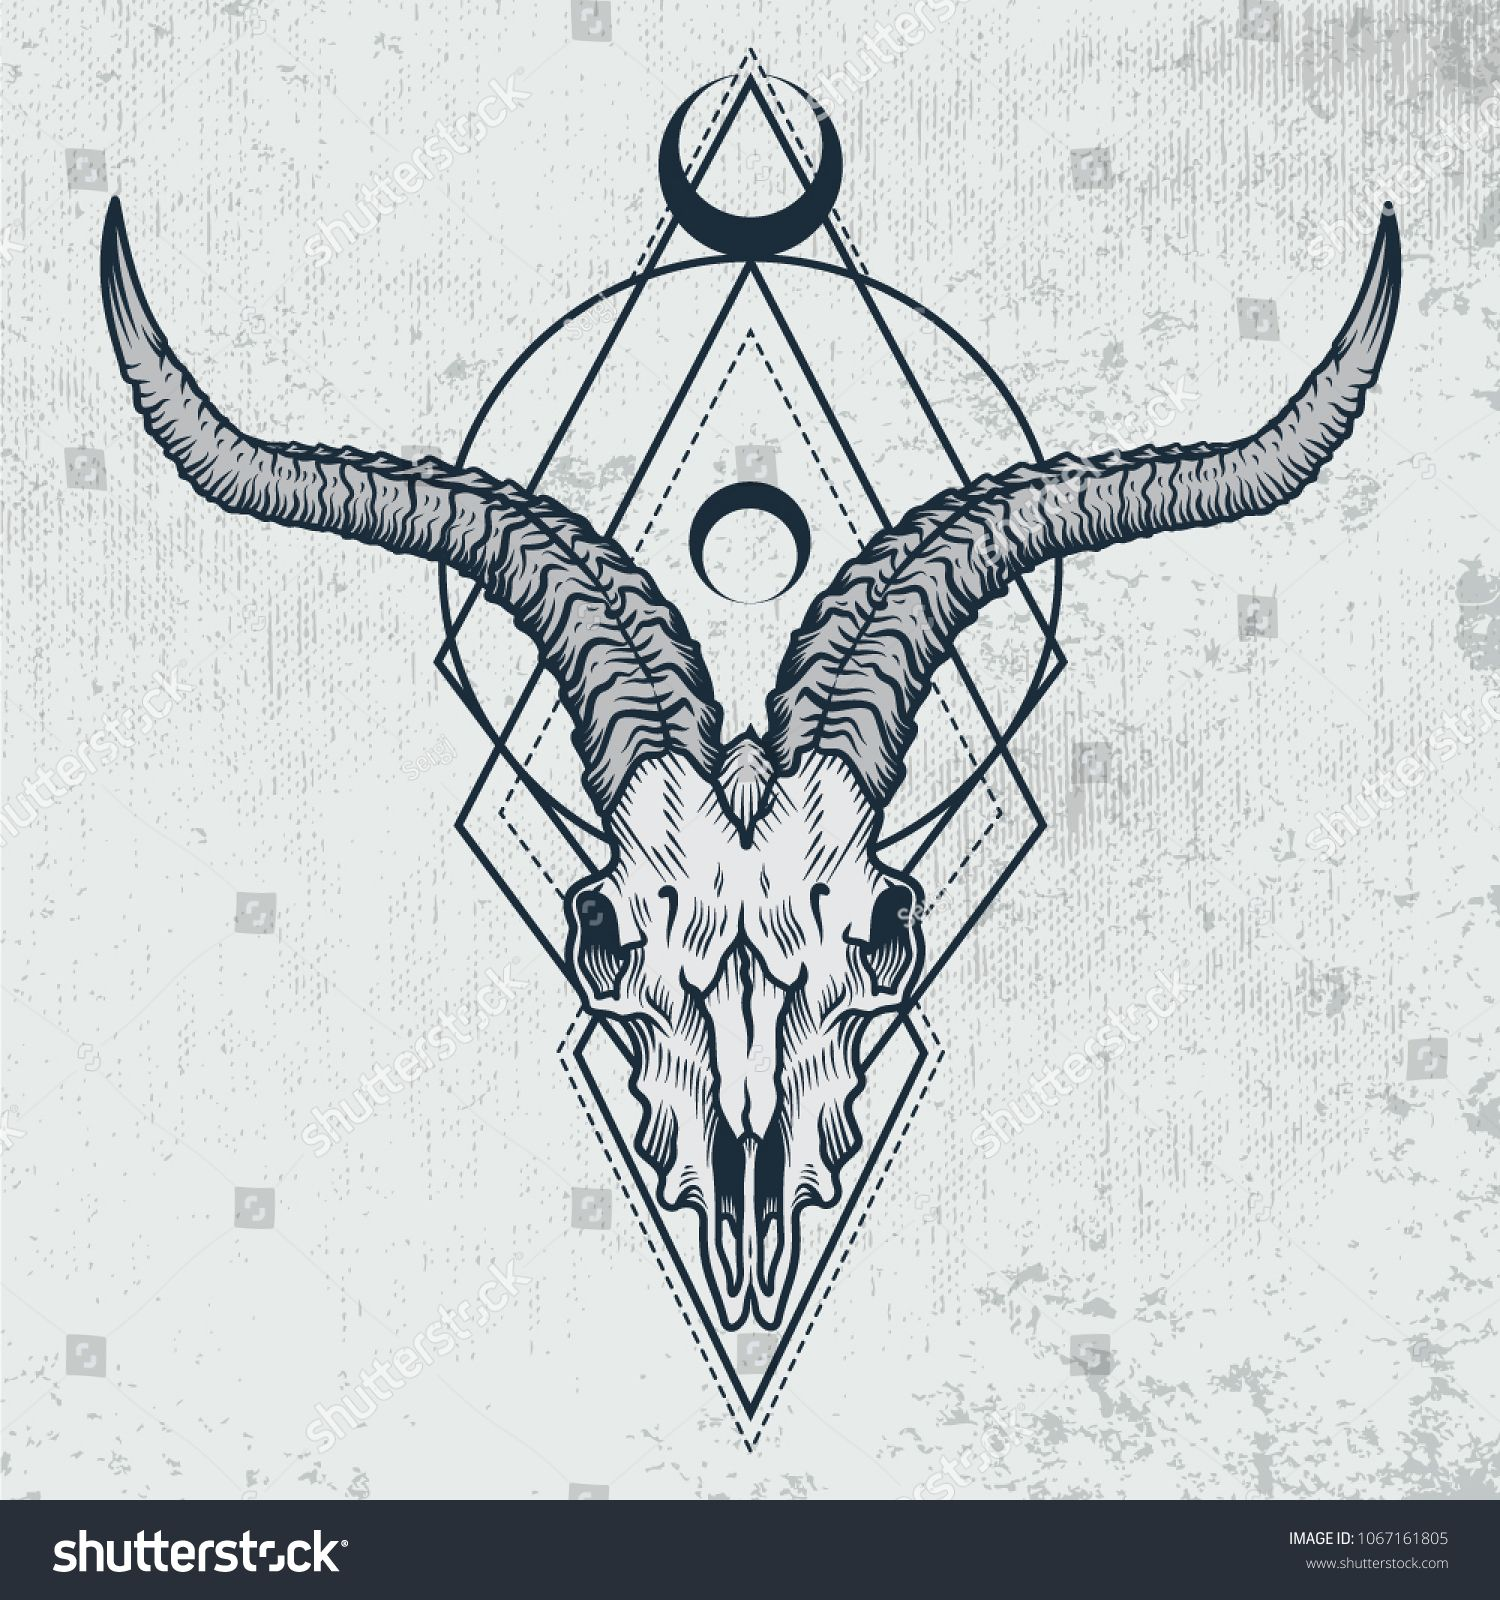 acb292f8d02ac Vector illustration of goat skull with sacred geometry shapes on grunge  background. Good for posters, t-shirt prints, tattoo design.